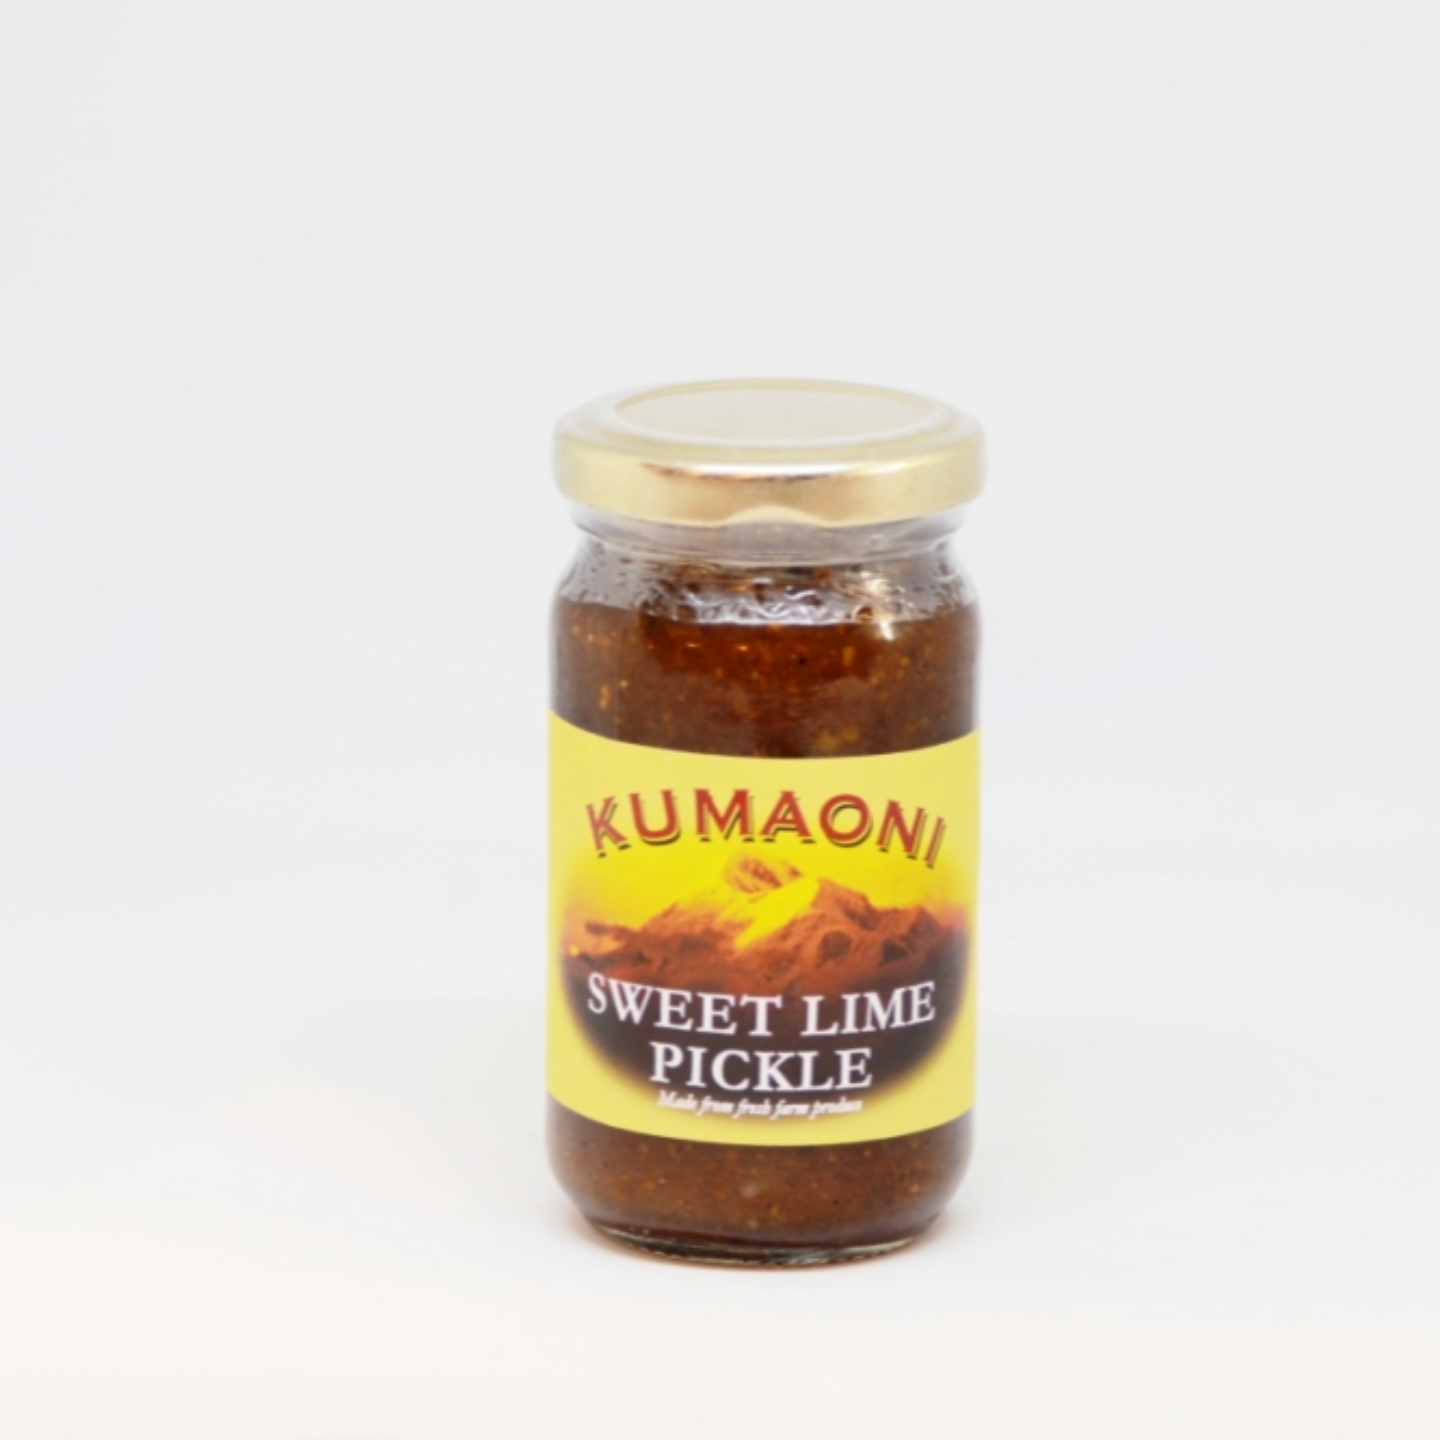 Kumaoni SweetLime Pickle 250 gm